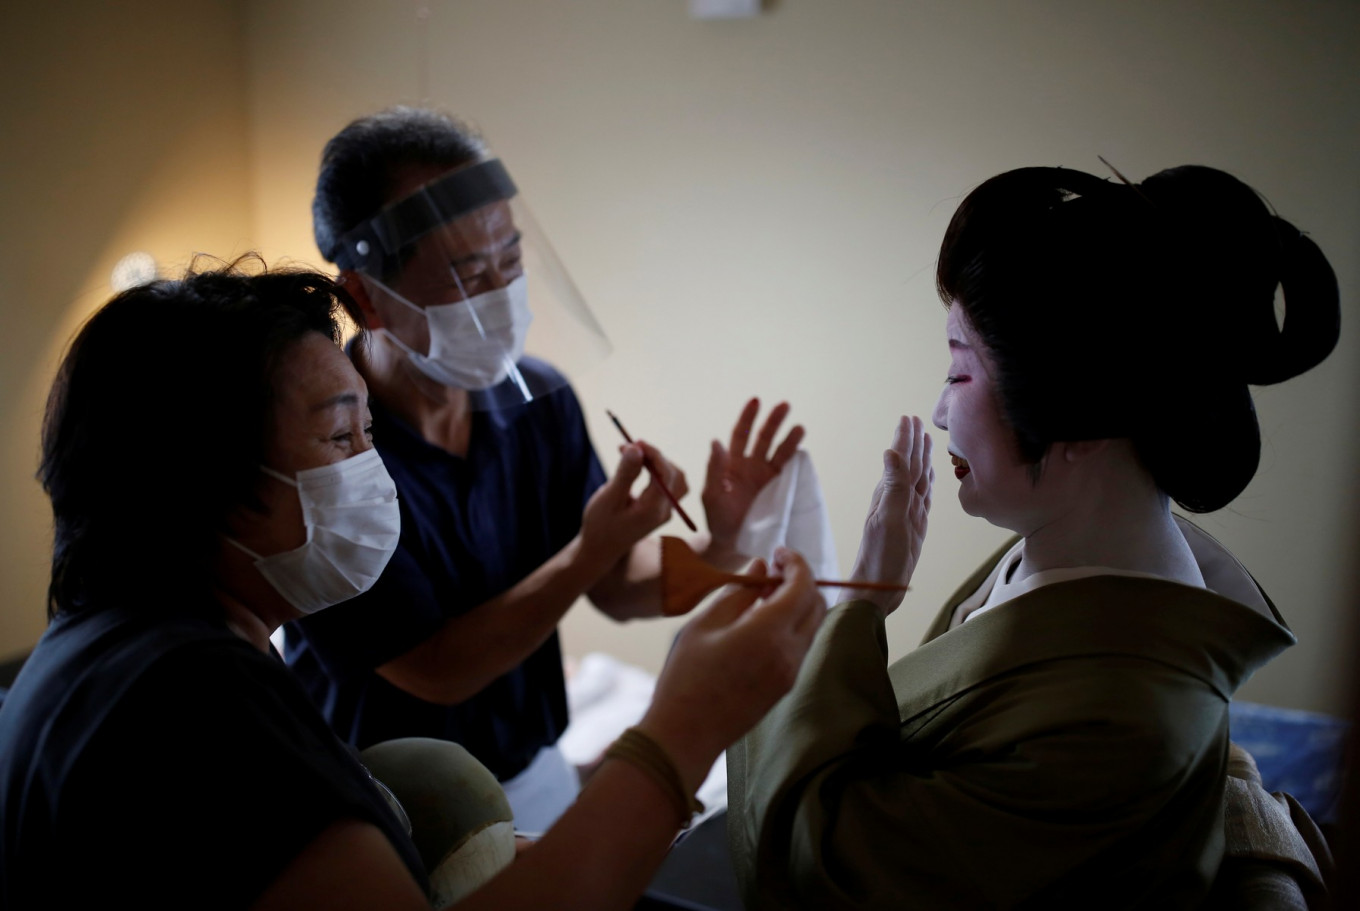 "Mitsunaga Kanda, a makeup artist and Yurie Hatanaka, a wig stylist, wear protective face masks and face shields as they work on Tokijyo Hanasaki, a jiutamai dancer, before he dances for a film being made that is supported by the Tokyo Metropolitan government in order to support artists during the coronavirus disease (COVID-19) outbreak, at a studio in Tokyo, Japan, June 29, 2020. ""Every single one of my events has been cancelled"", said Kanda. ""We touch their skin and their face, all over, and while we don't talk we're very close - something we're very aware of now."" Reuters/Kim Kyung-Hoon"